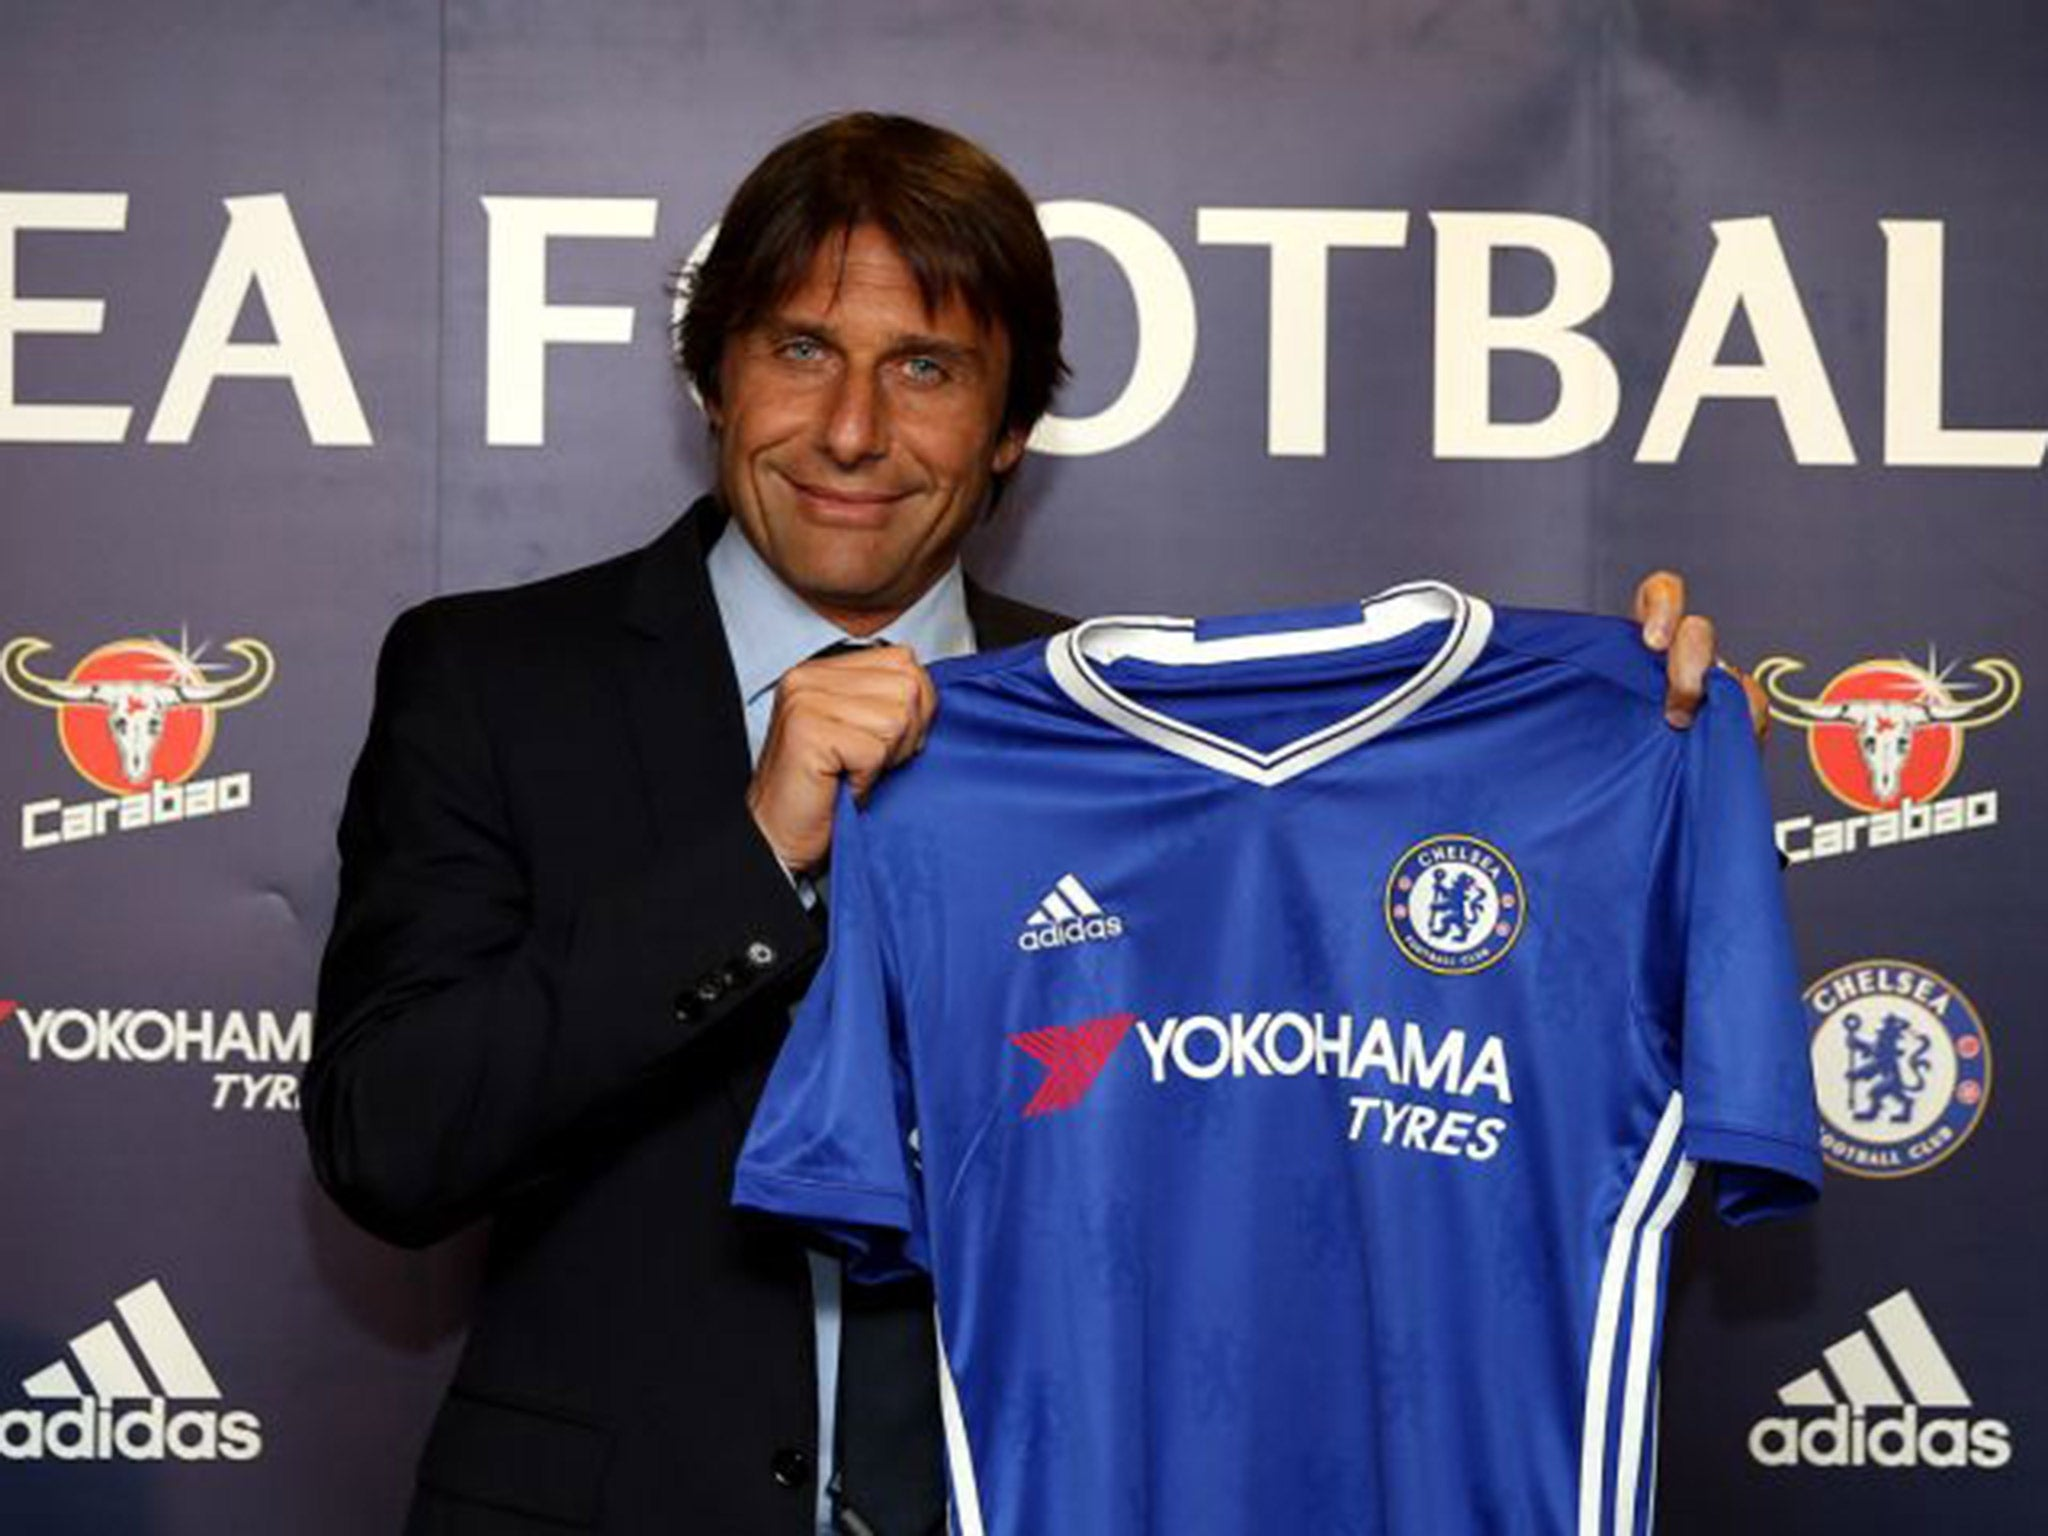 Antonio Conte press conference live: Latest from Chelsea manager